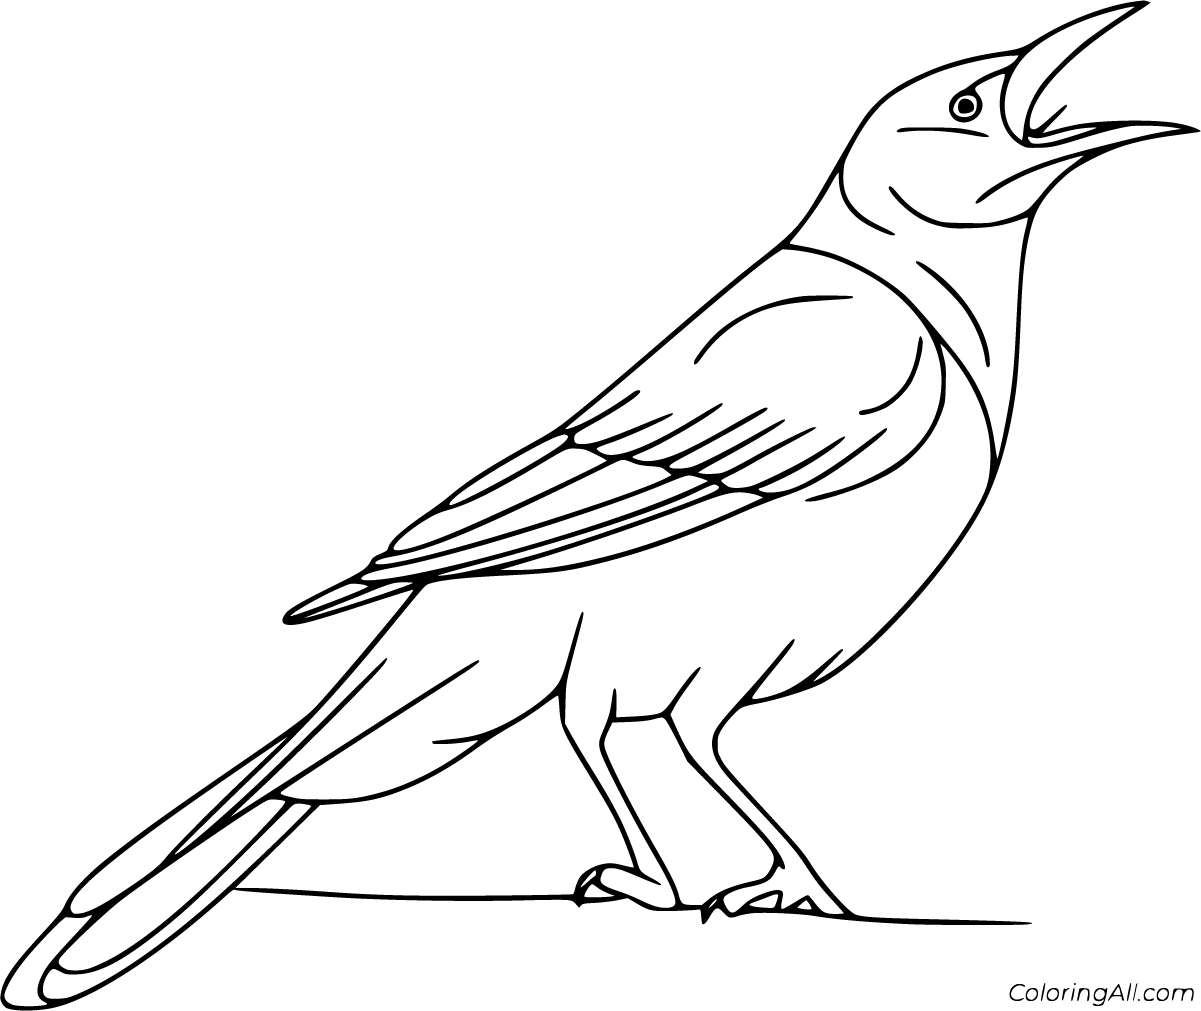 10 Free Printable Crow Coloring Pages In Vector Format Easy To Print From Any Device And Automatically Fit Any Paper S Bird Coloring Pages Coloring Pages Crow